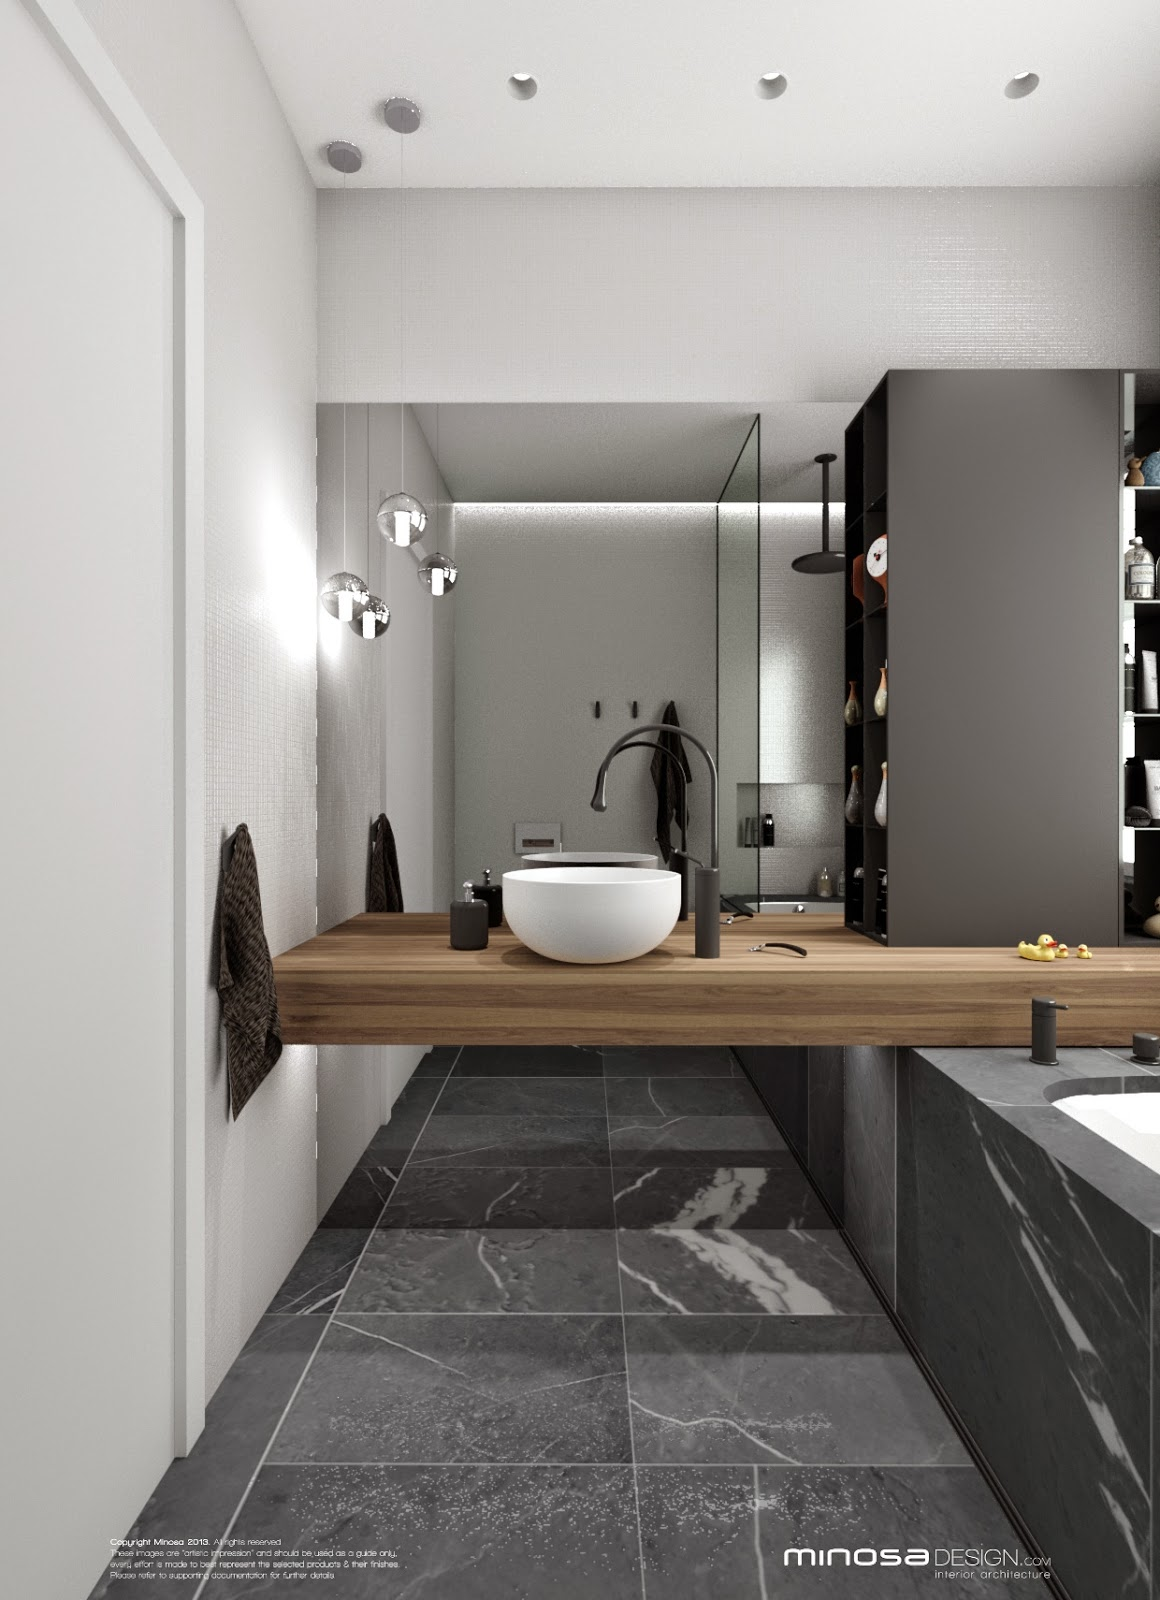 Bathroom Design   Small Space Feels Large